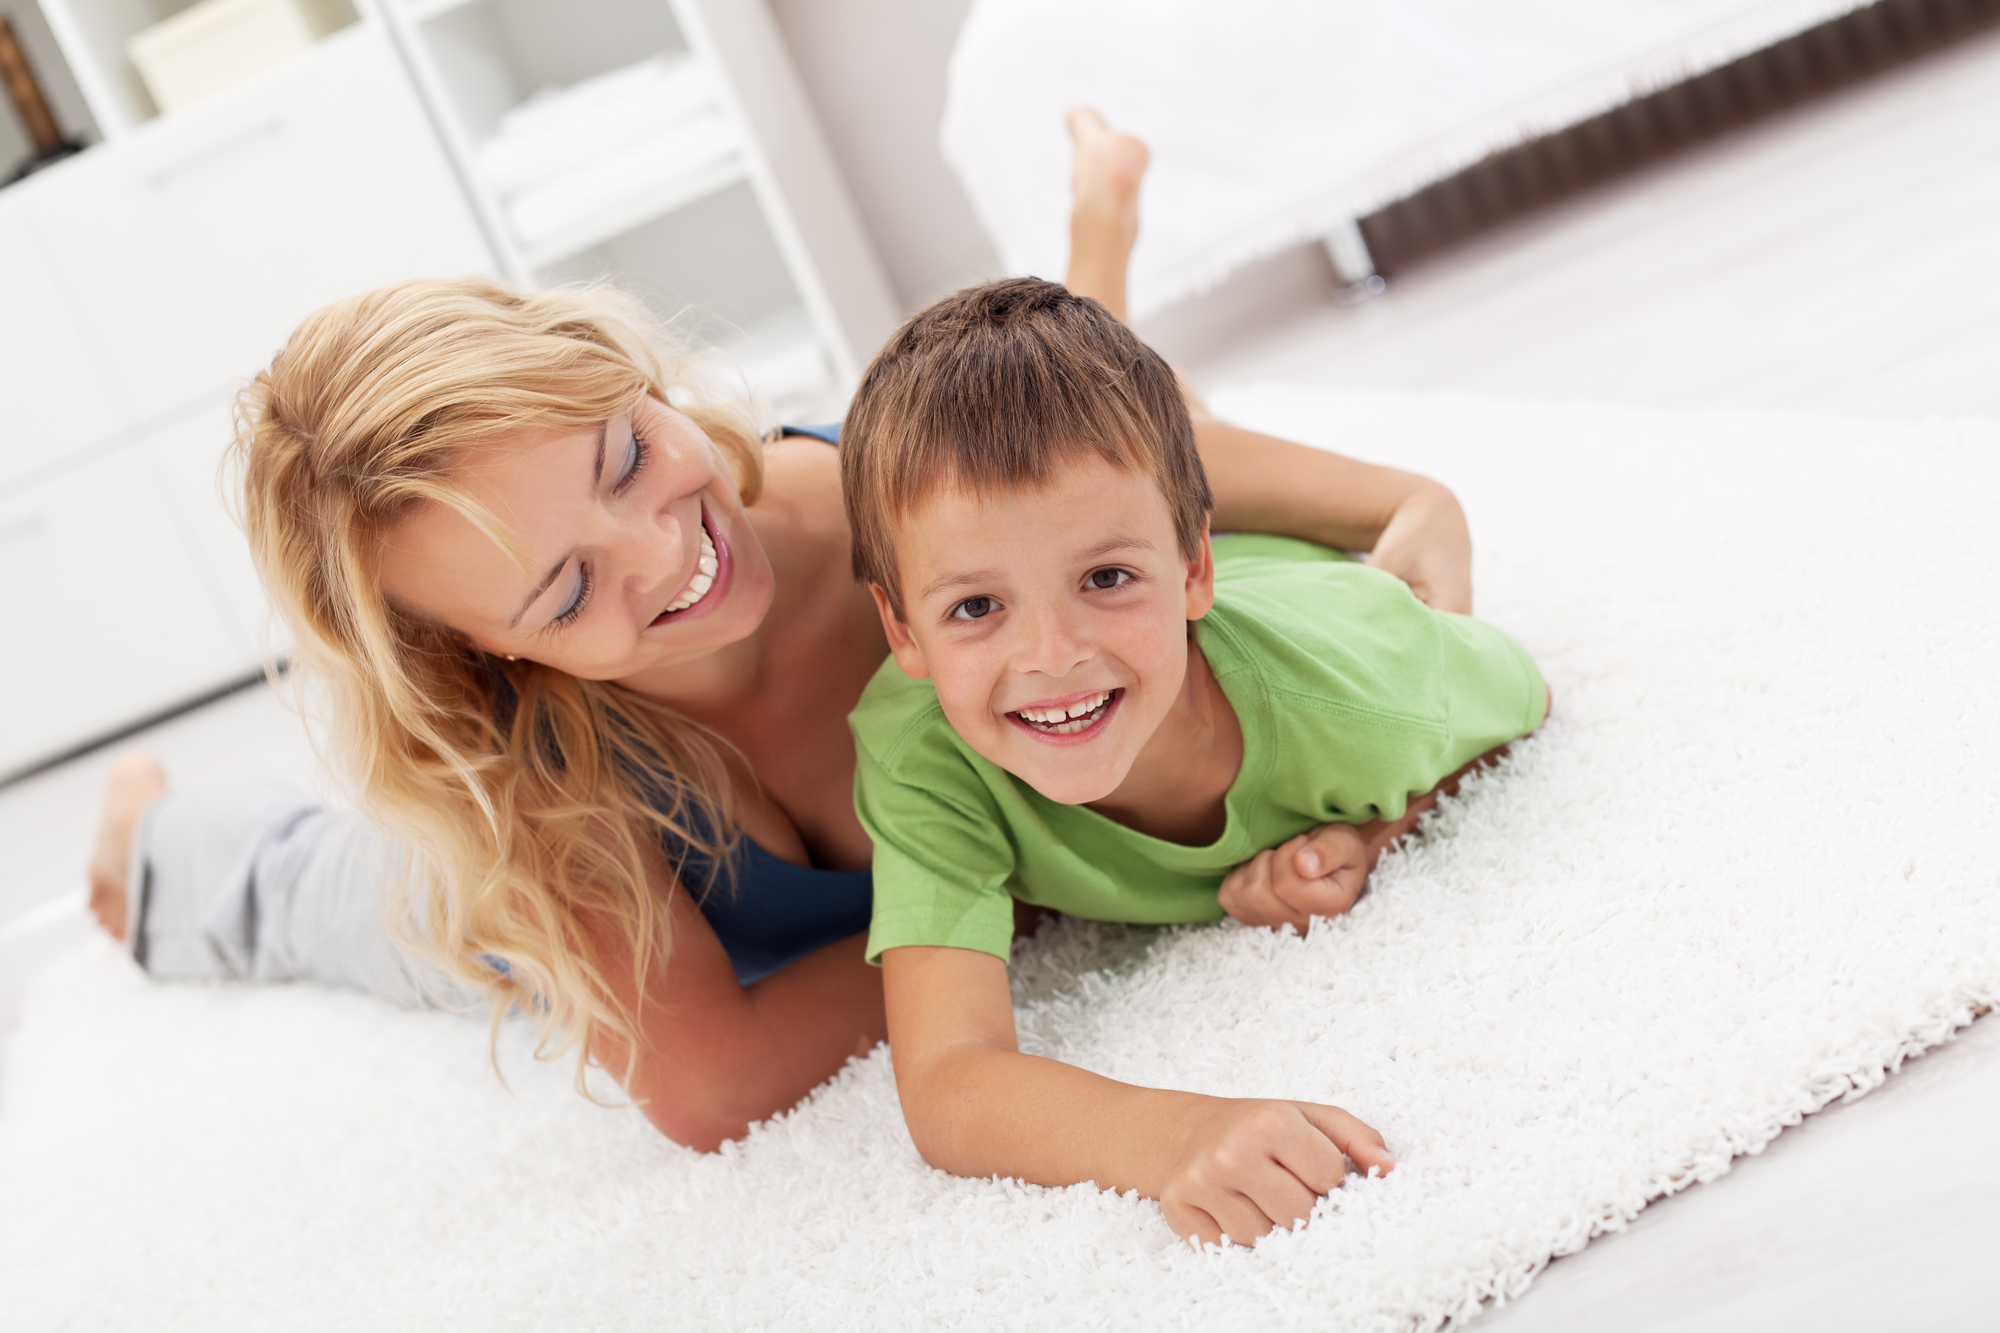 How to Build Up Your Son in a World That Would Tear Him Down